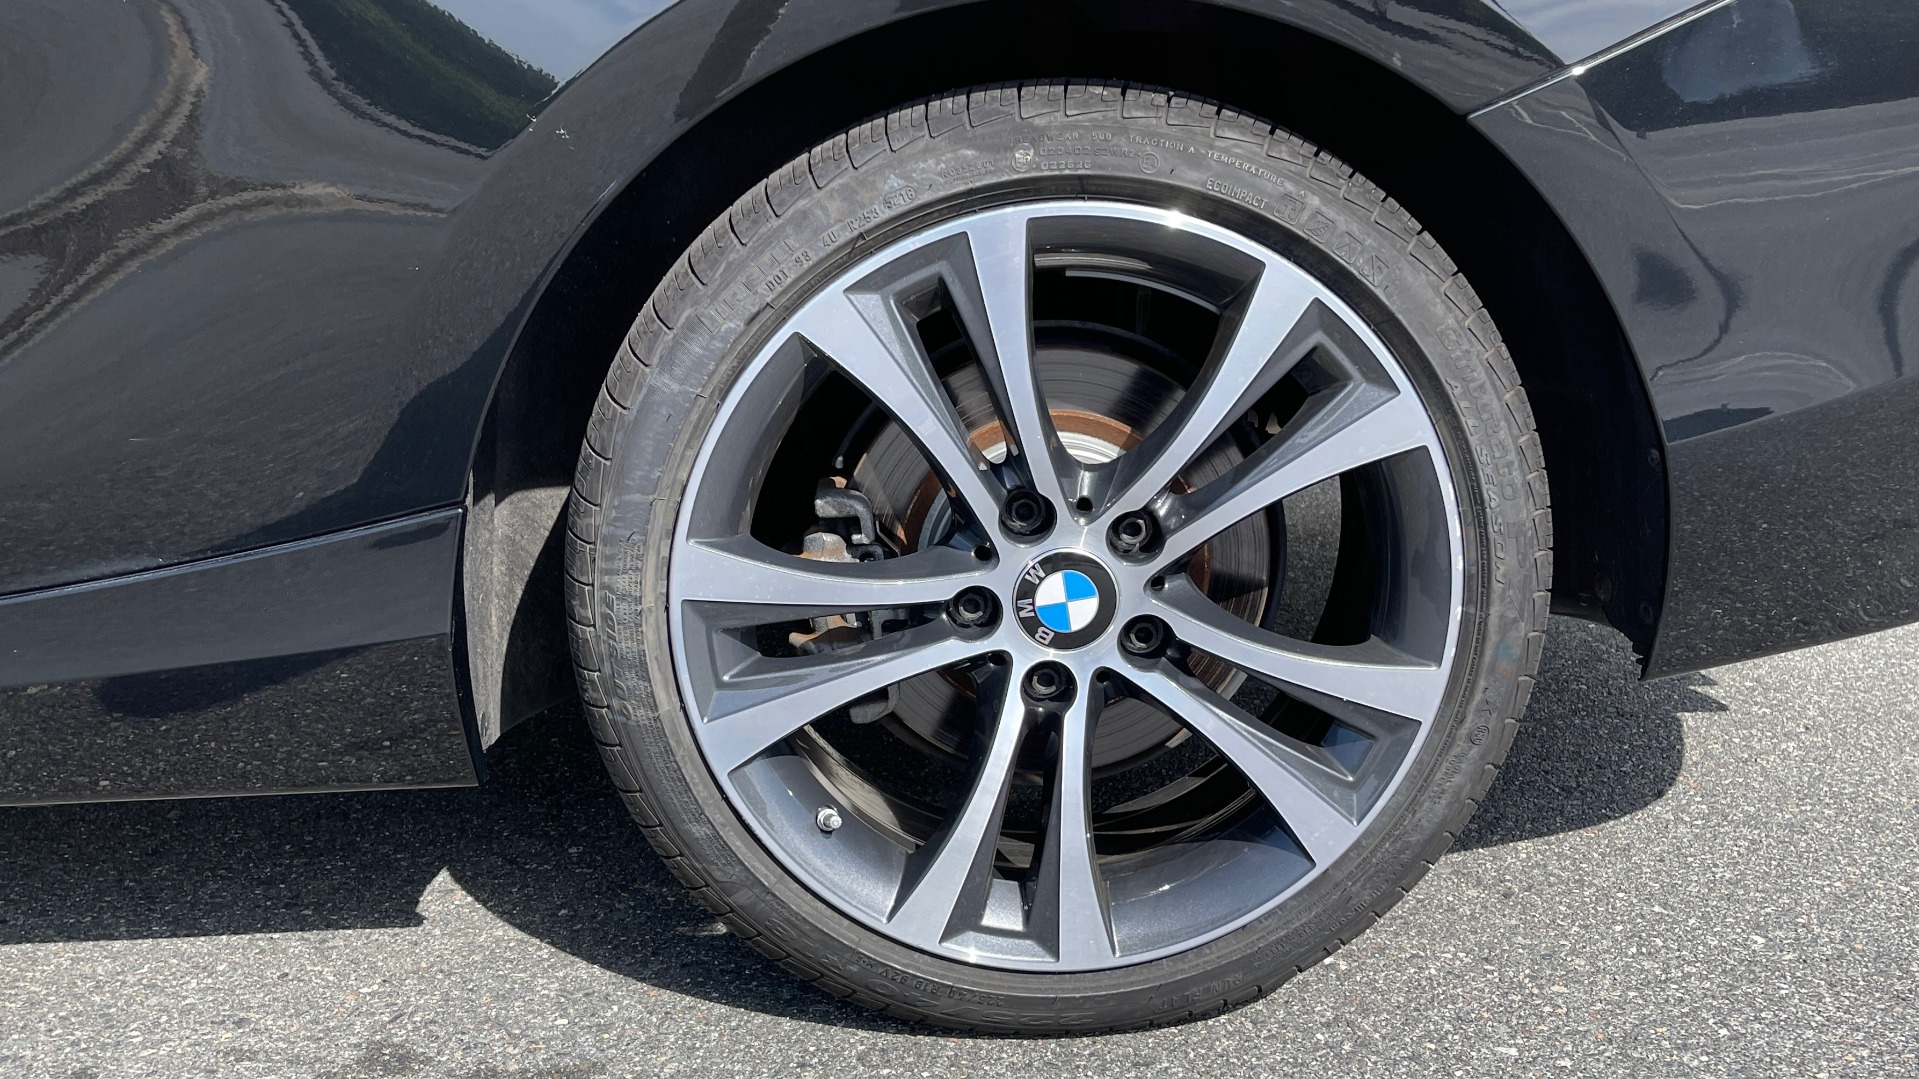 Used 2018 BMW 2 SERIES 230I XDRIVE PREMIUM / CONV PKG / NAV / SUNROOF / REARVIEW for sale $30,795 at Formula Imports in Charlotte NC 28227 53